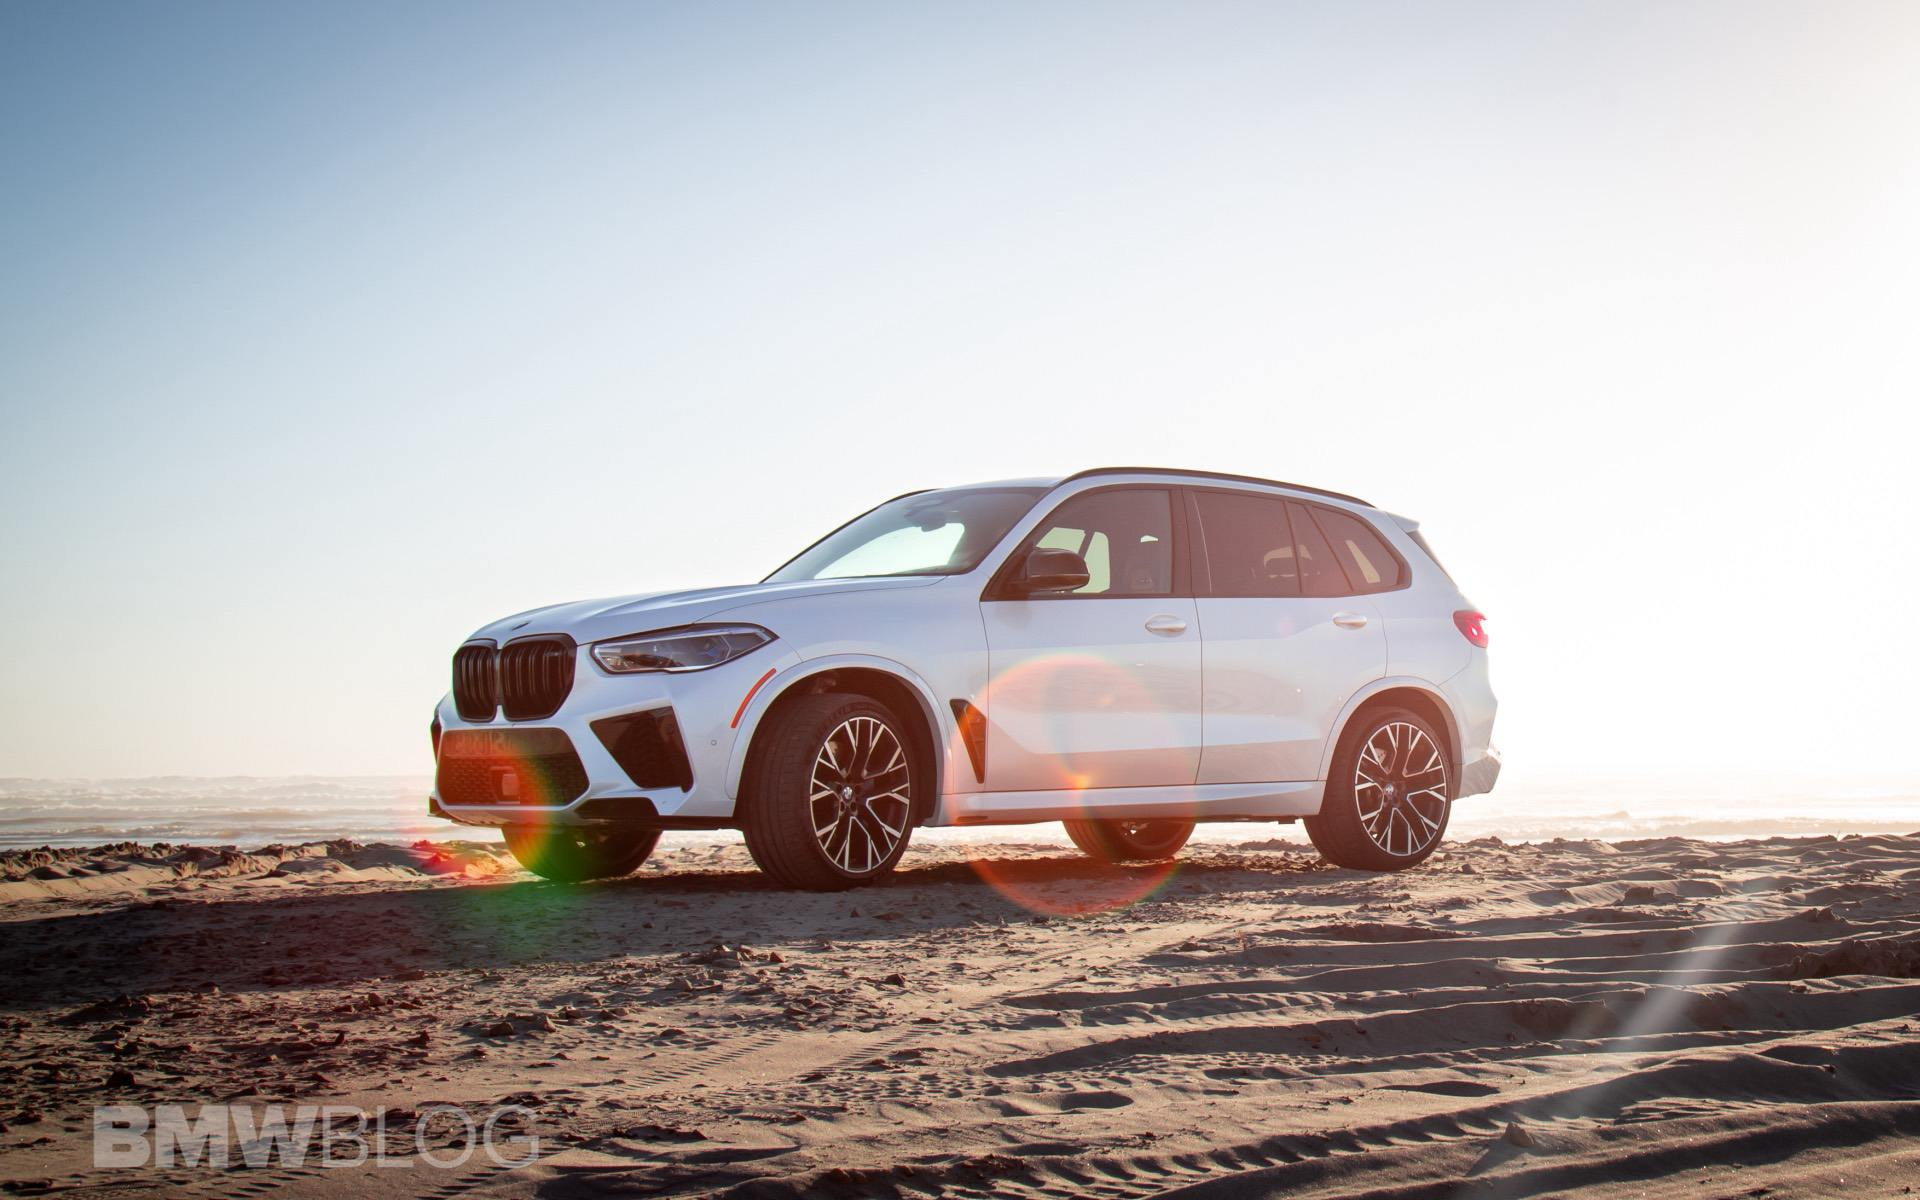 2021 bmw x5 m competition road trip 13